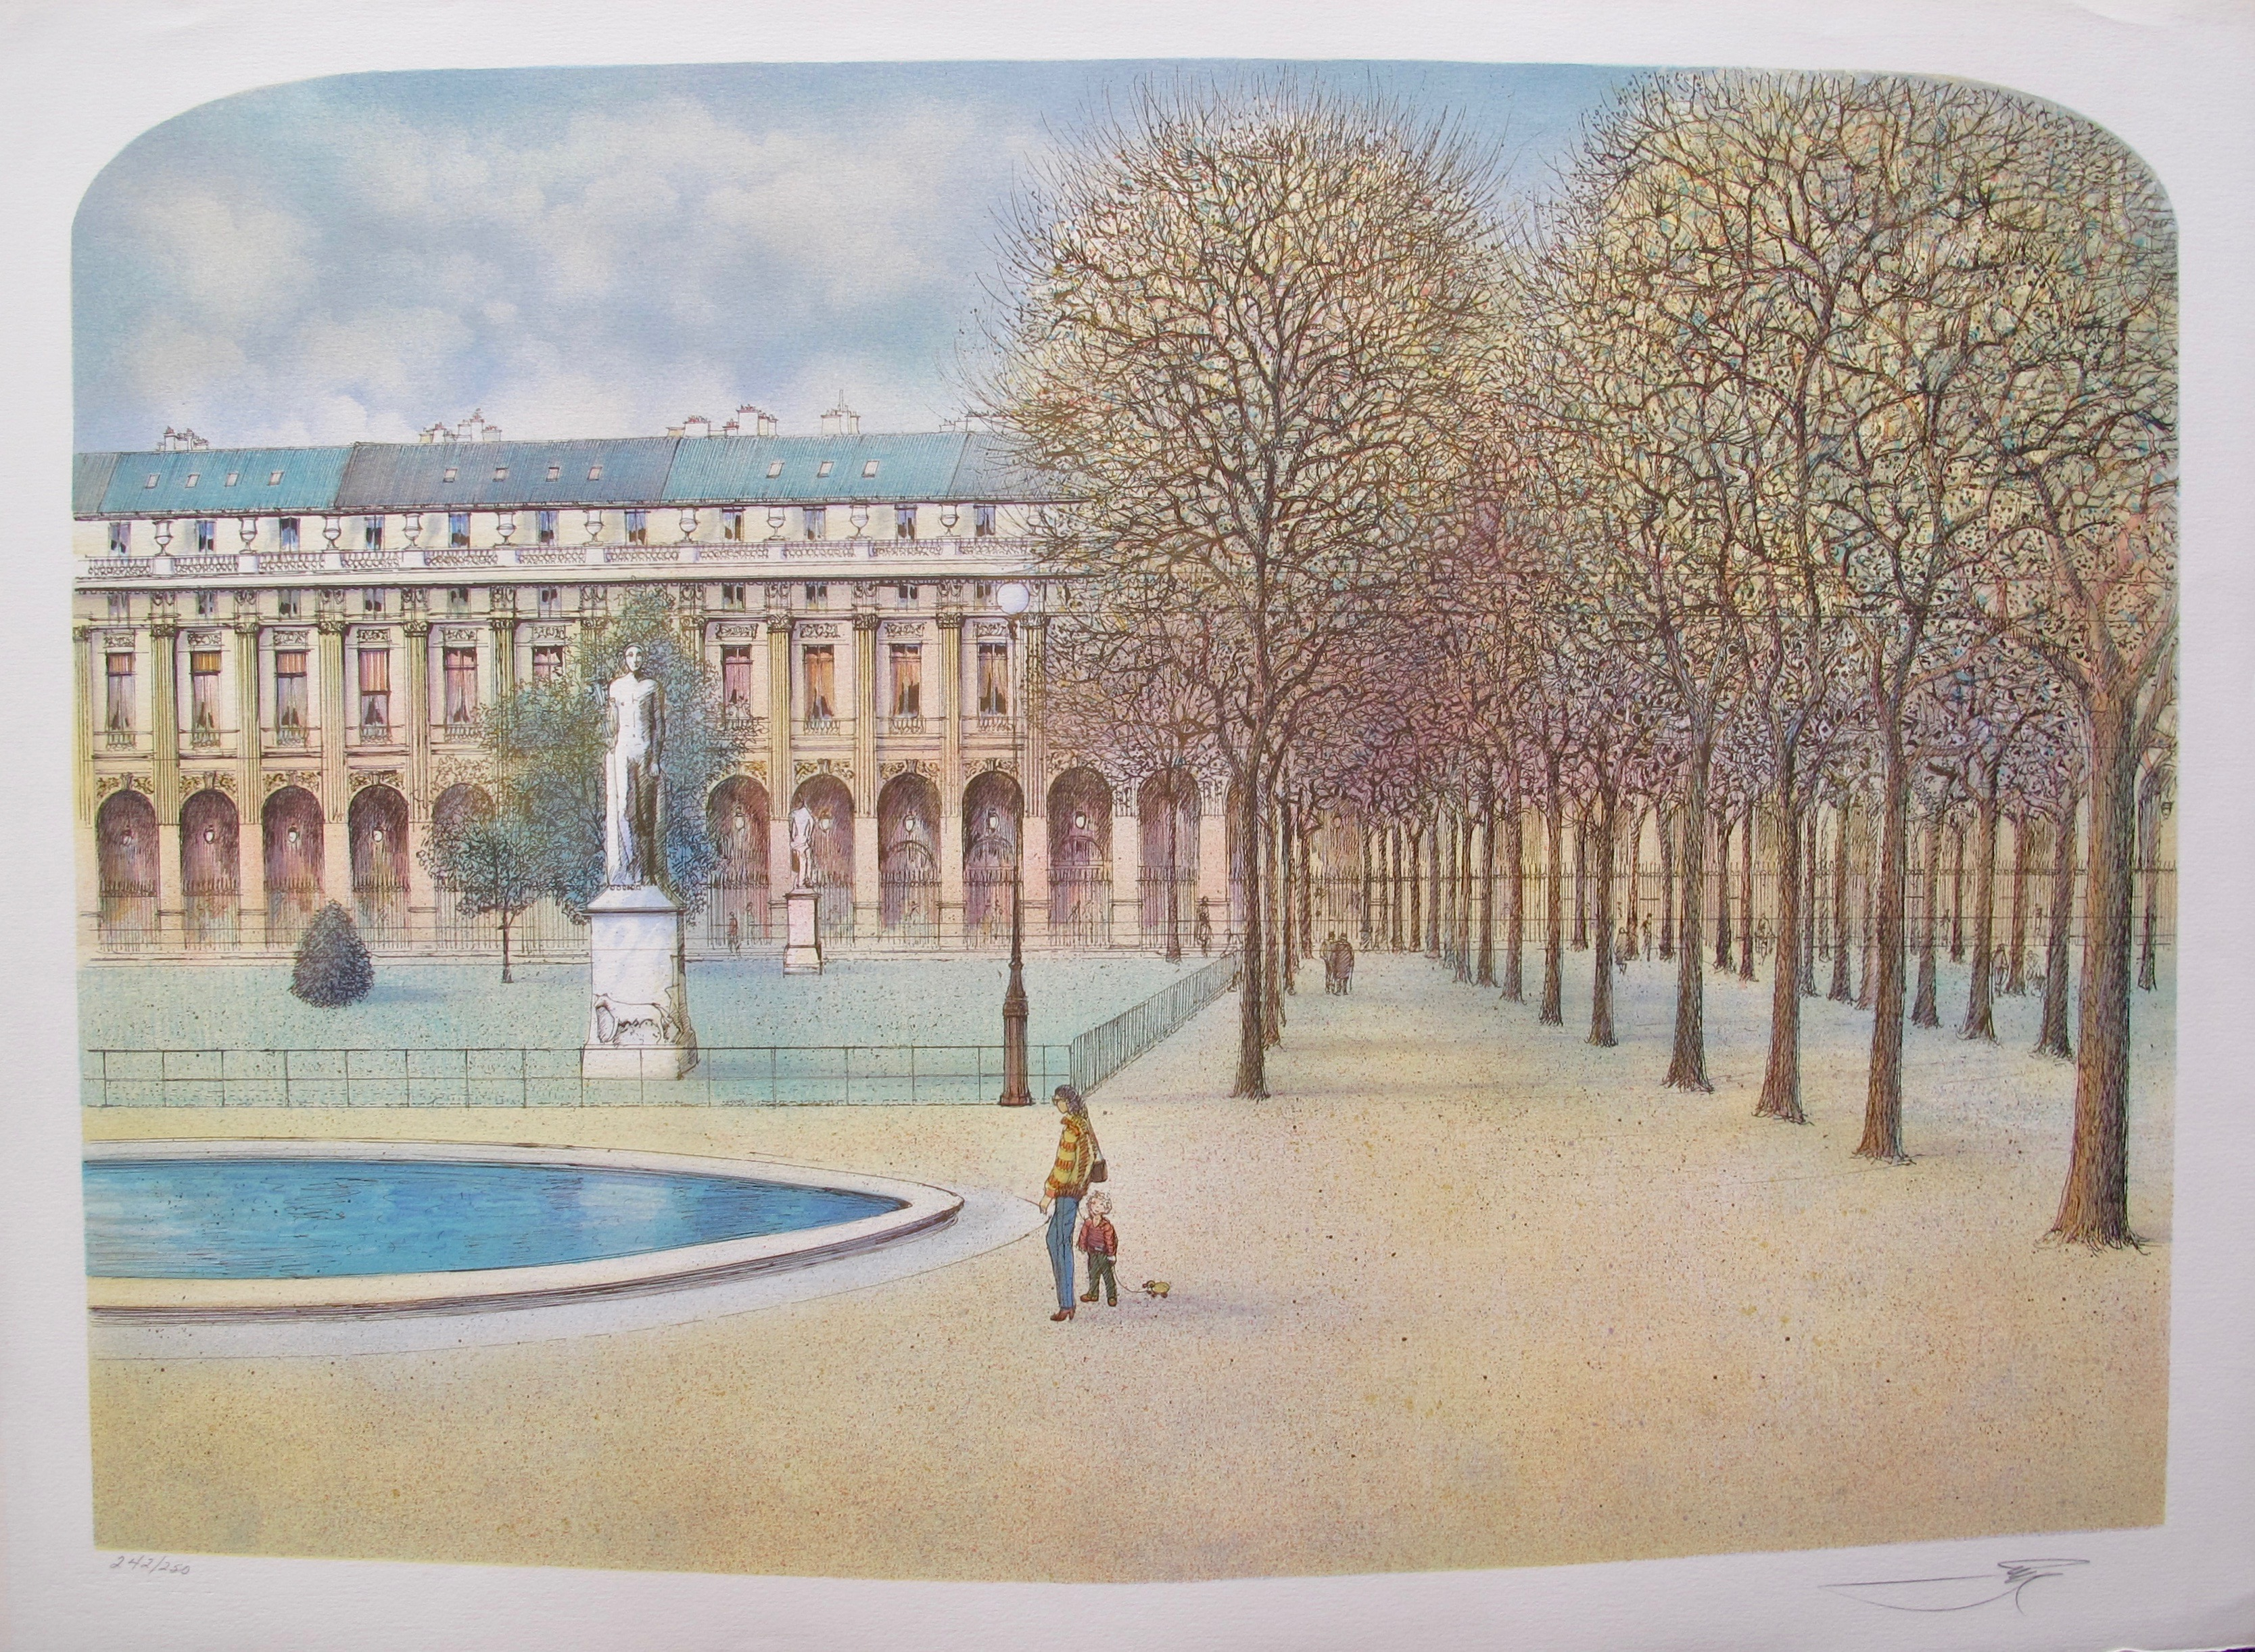 ROLF RAFFLEWSKI PARIS, FRANCE Hand Signed Limited Edition Lithograph